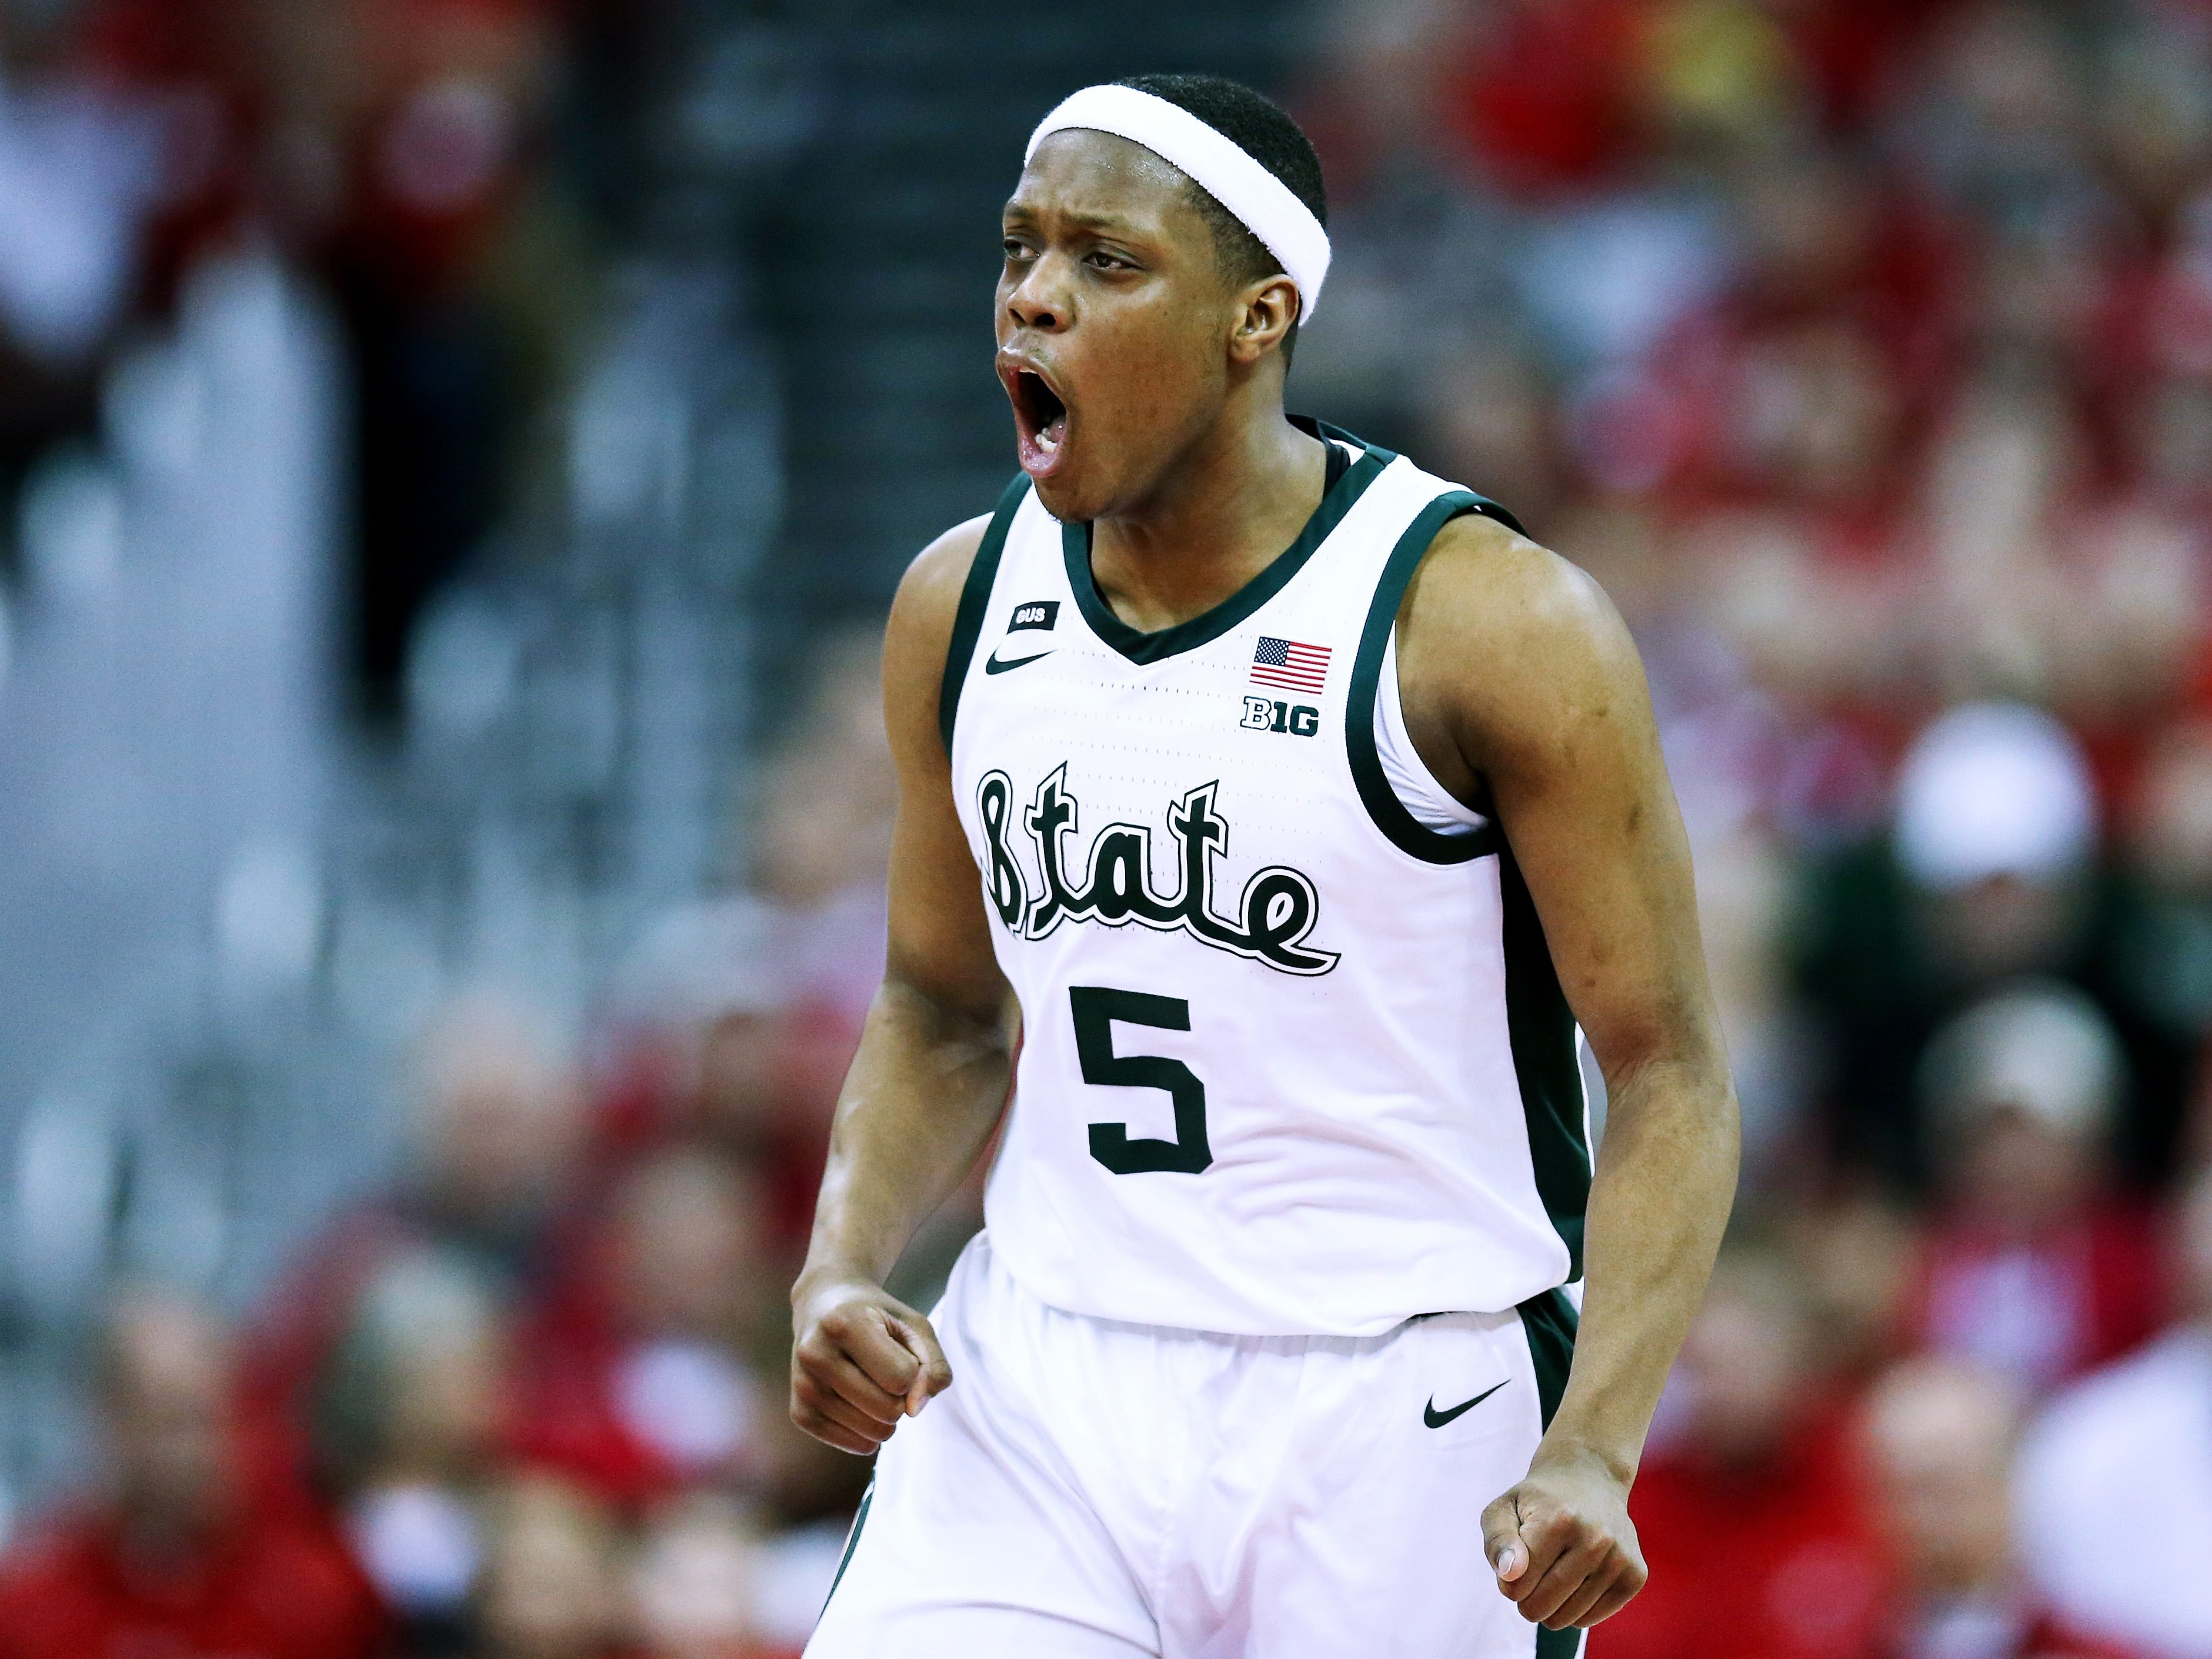 Michigan State's Cassius Winston reacts in the first half against Wisconsin.